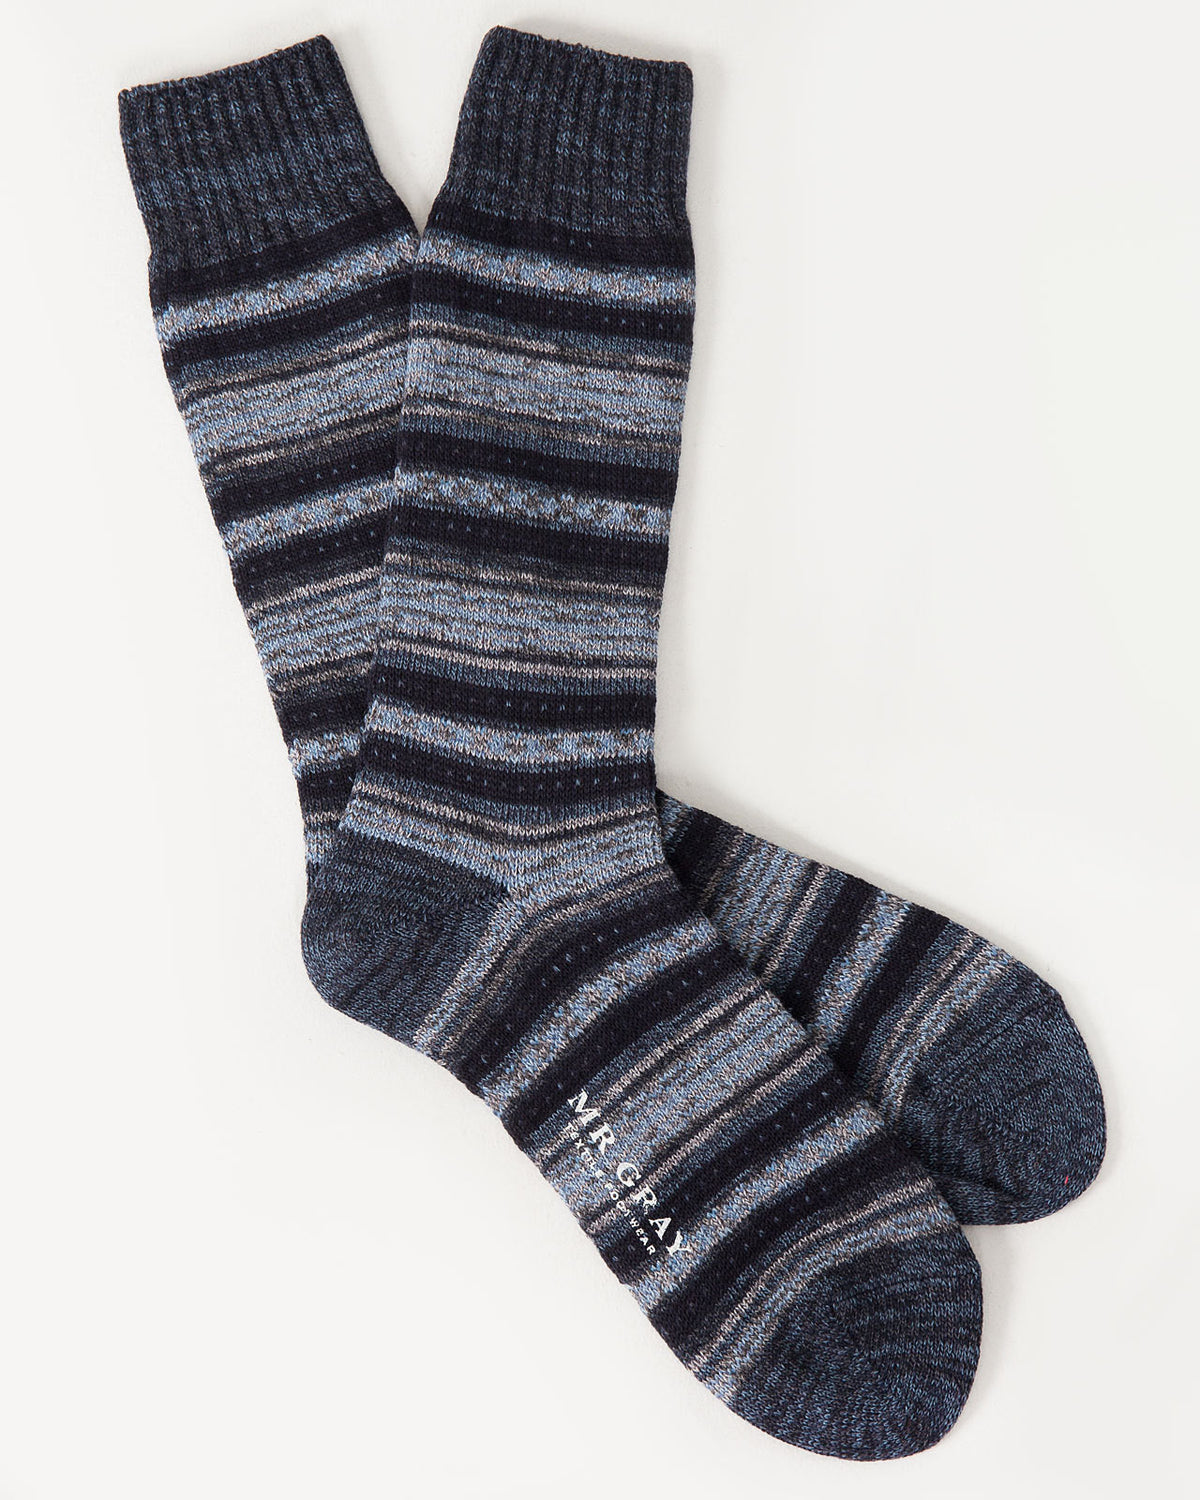 Blanket Border Sock in Black Navy